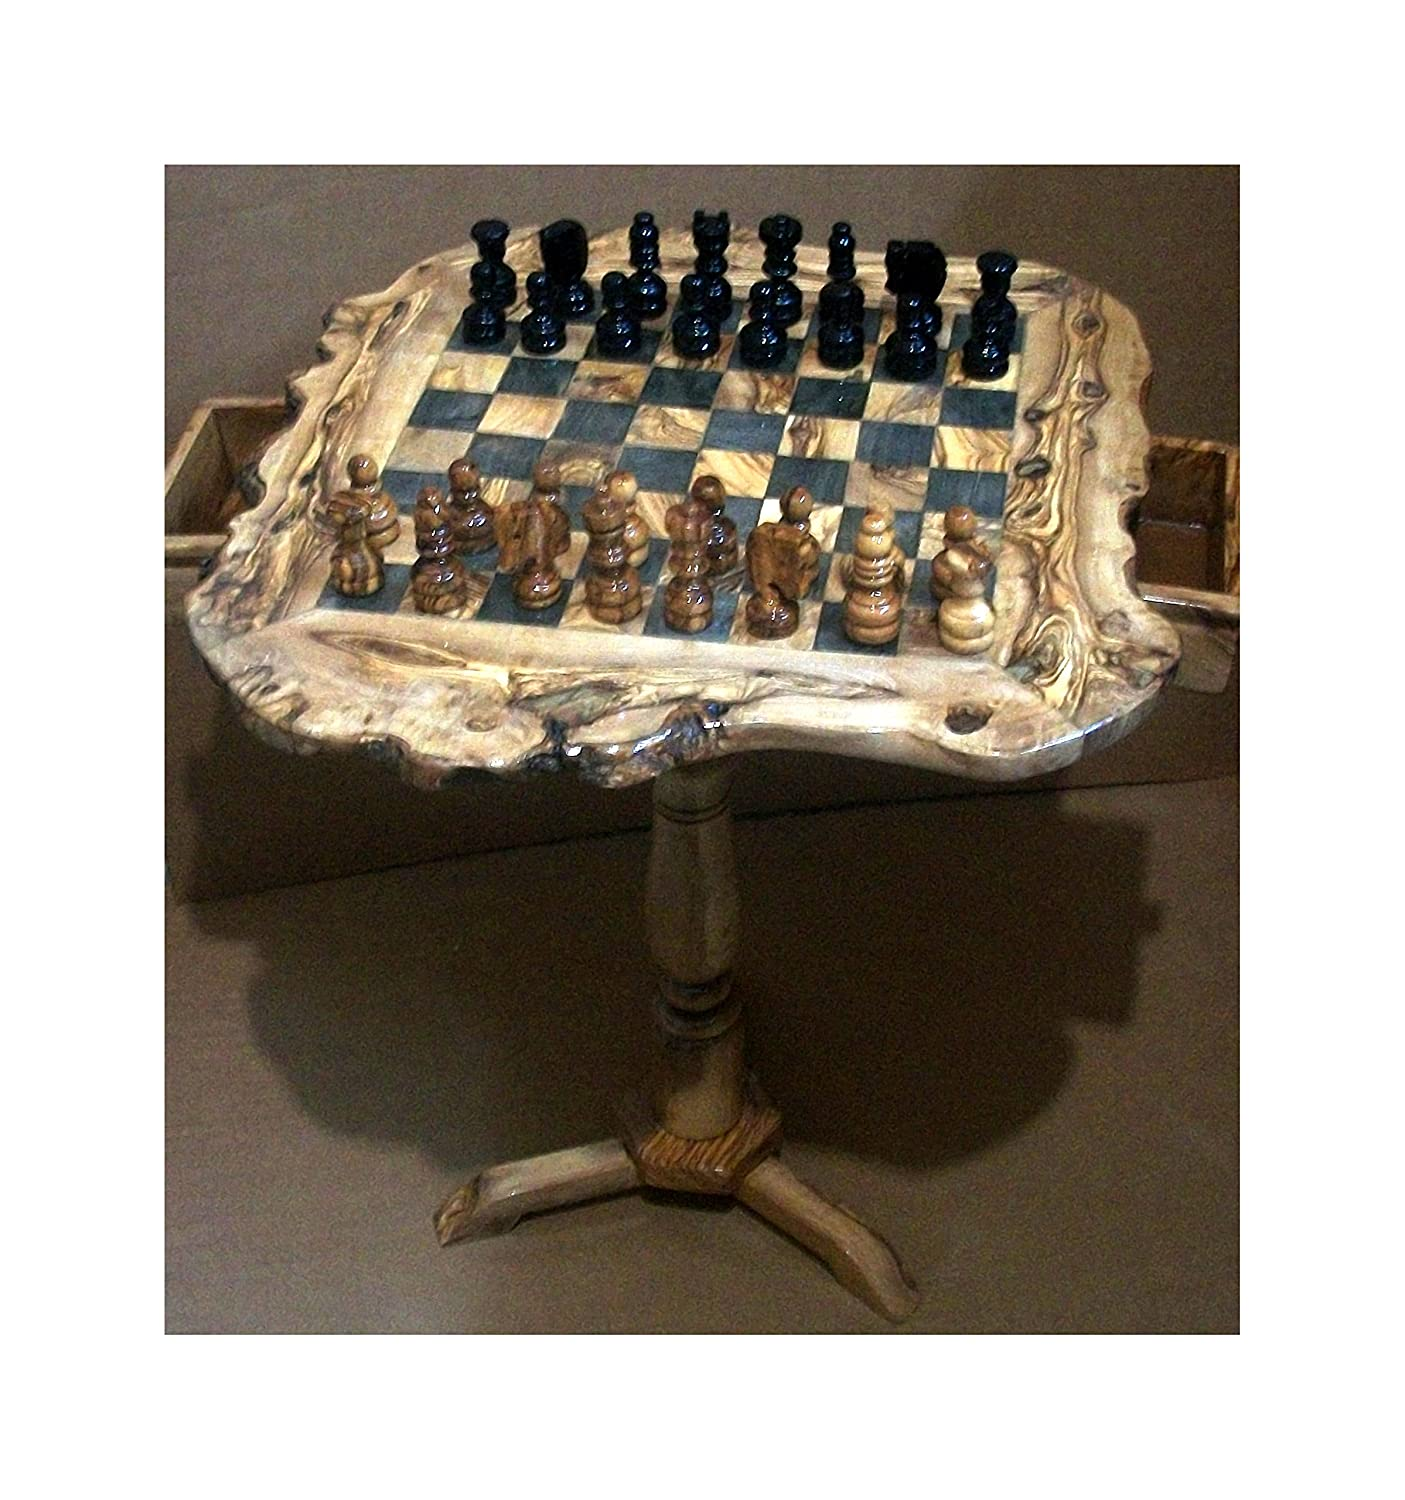 Olive Wood Rustic Chess Set With Stand   60 Cm: Amazon.co.uk: Kitchen U0026 Home